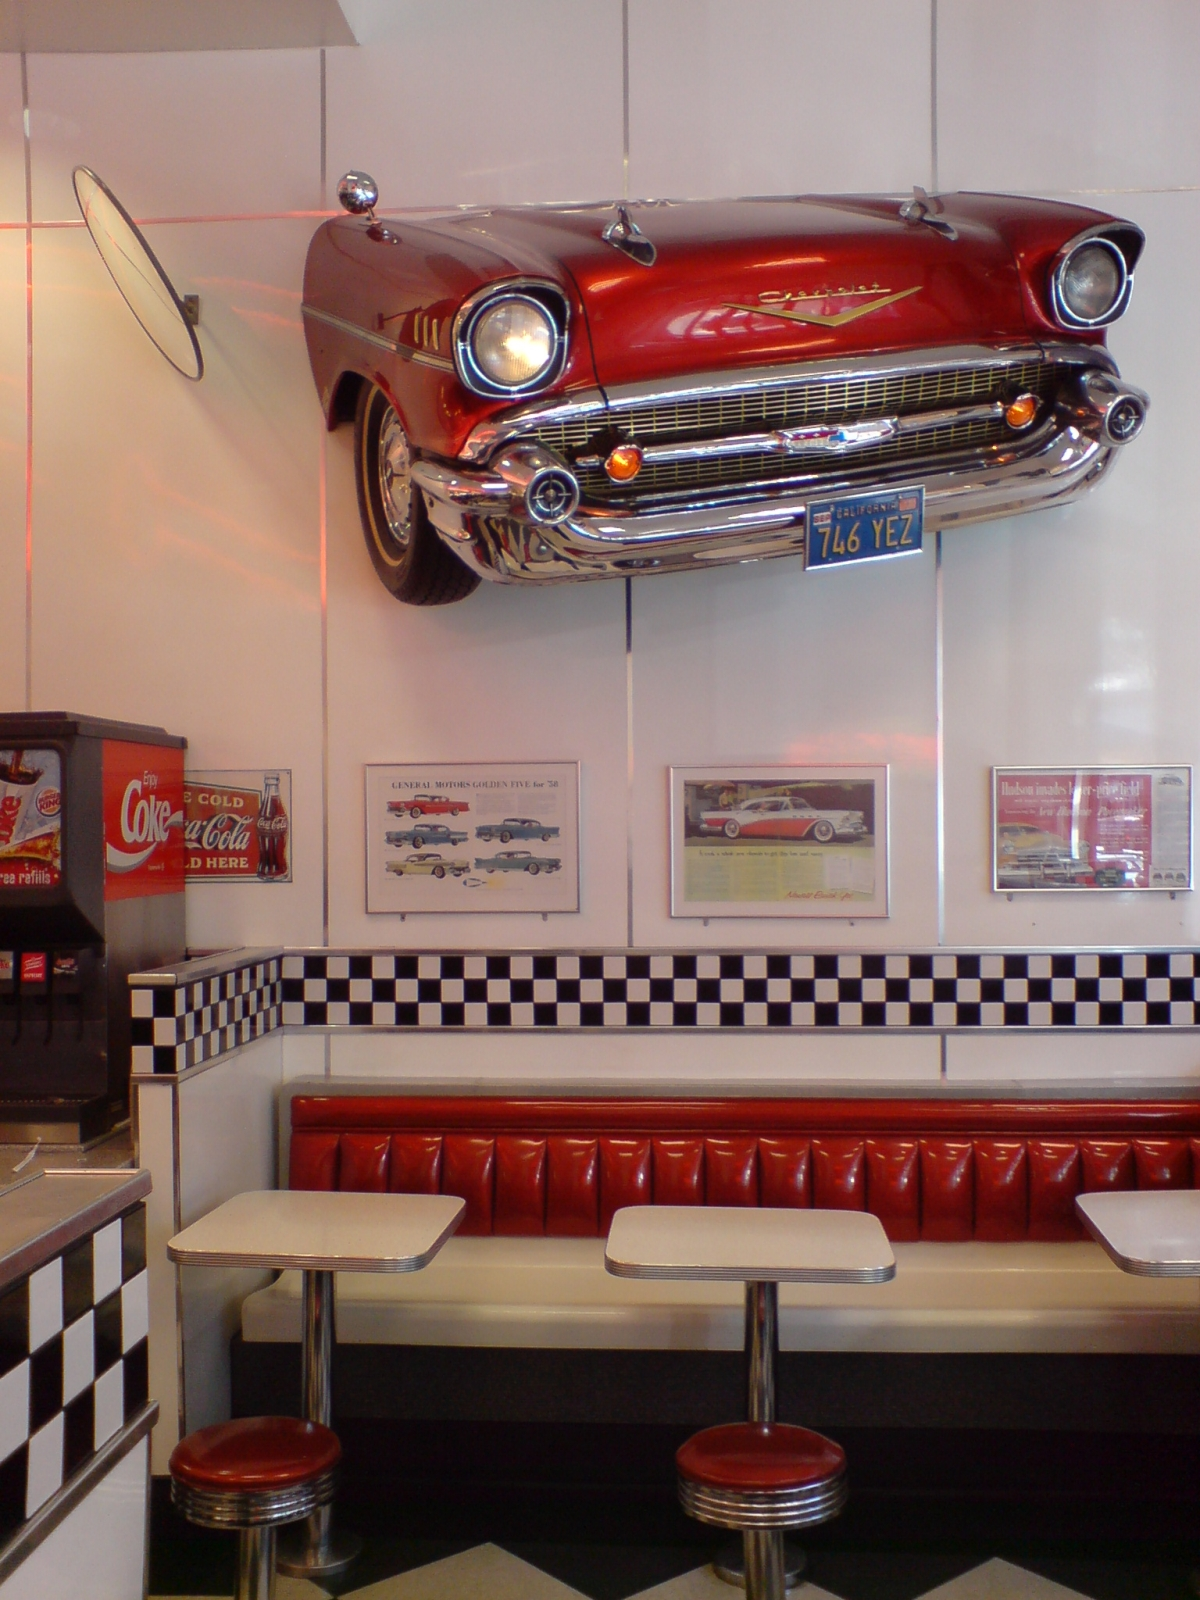 Description Burger King, Pseudo 1950s American Diner.jpg